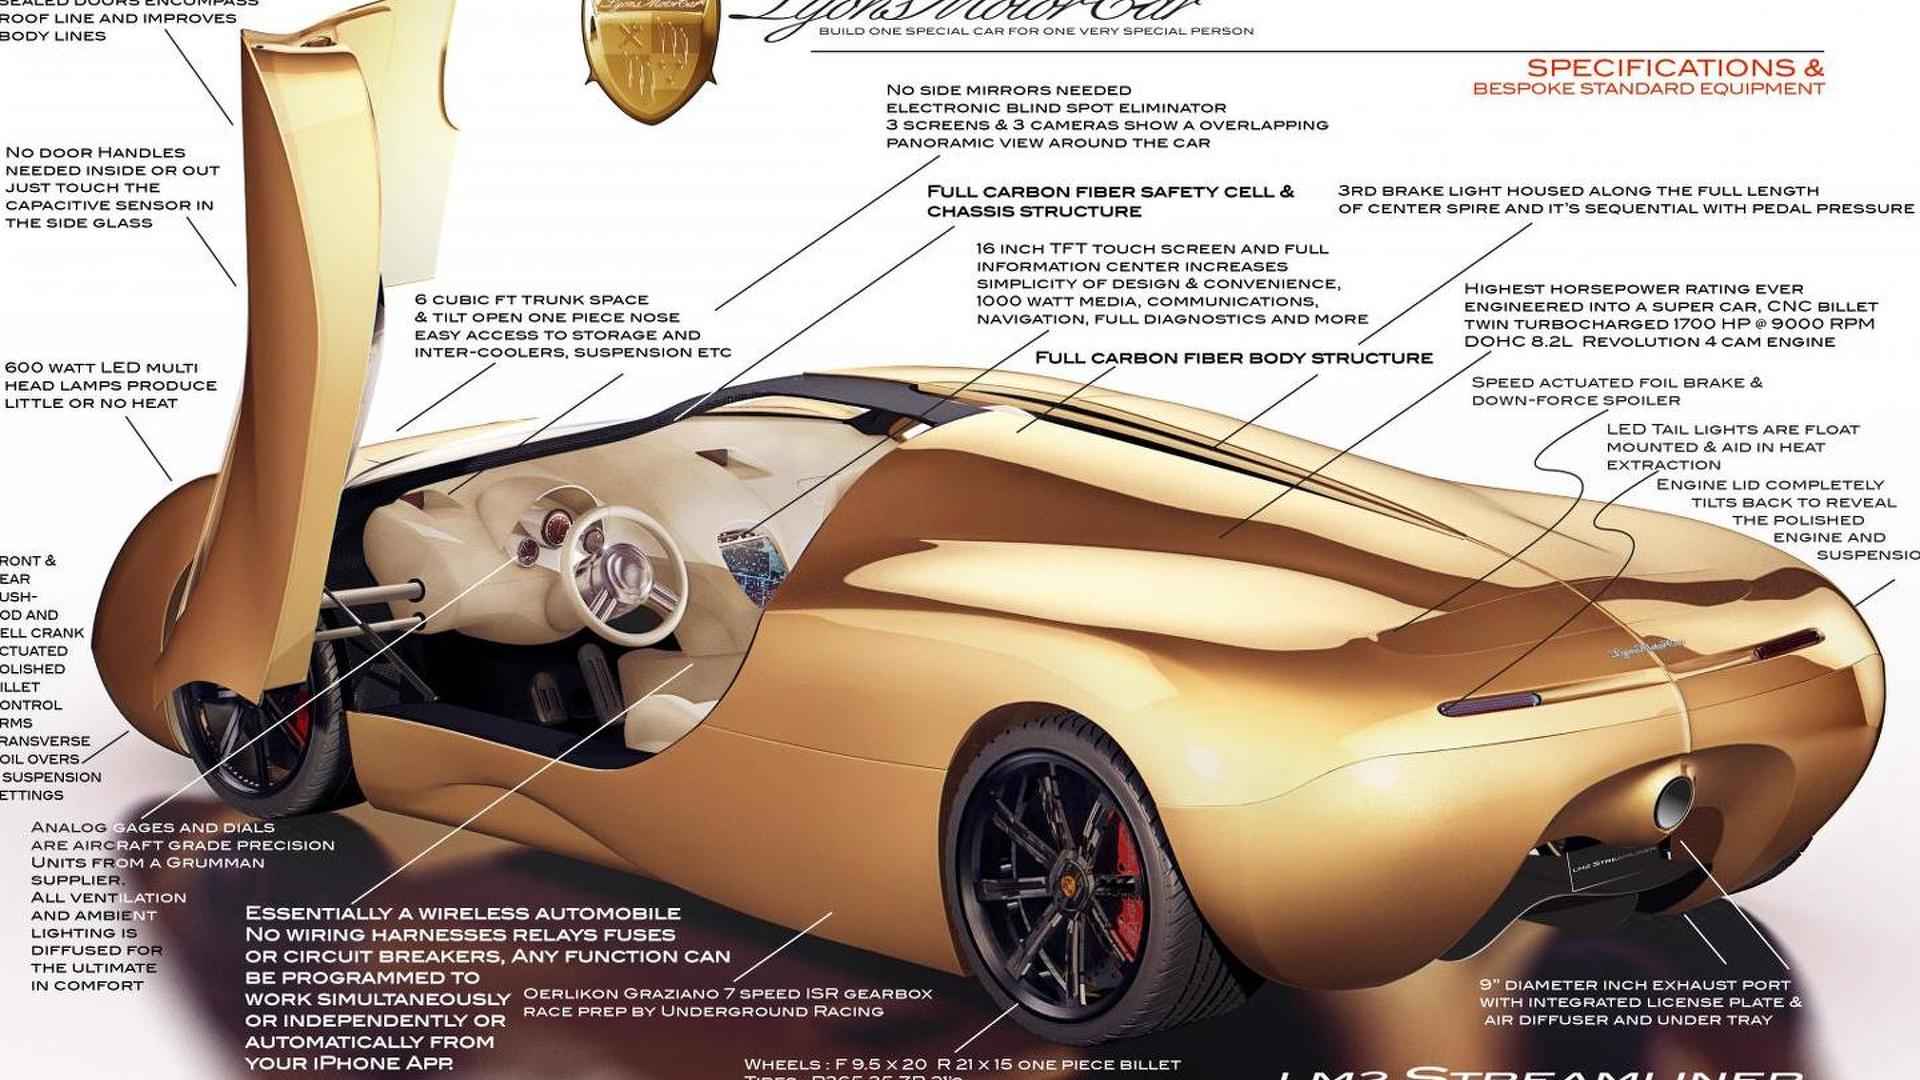 American Company To Debut 1700 Hp Supercar At New York Auto Show Simplicity Wiring Harness